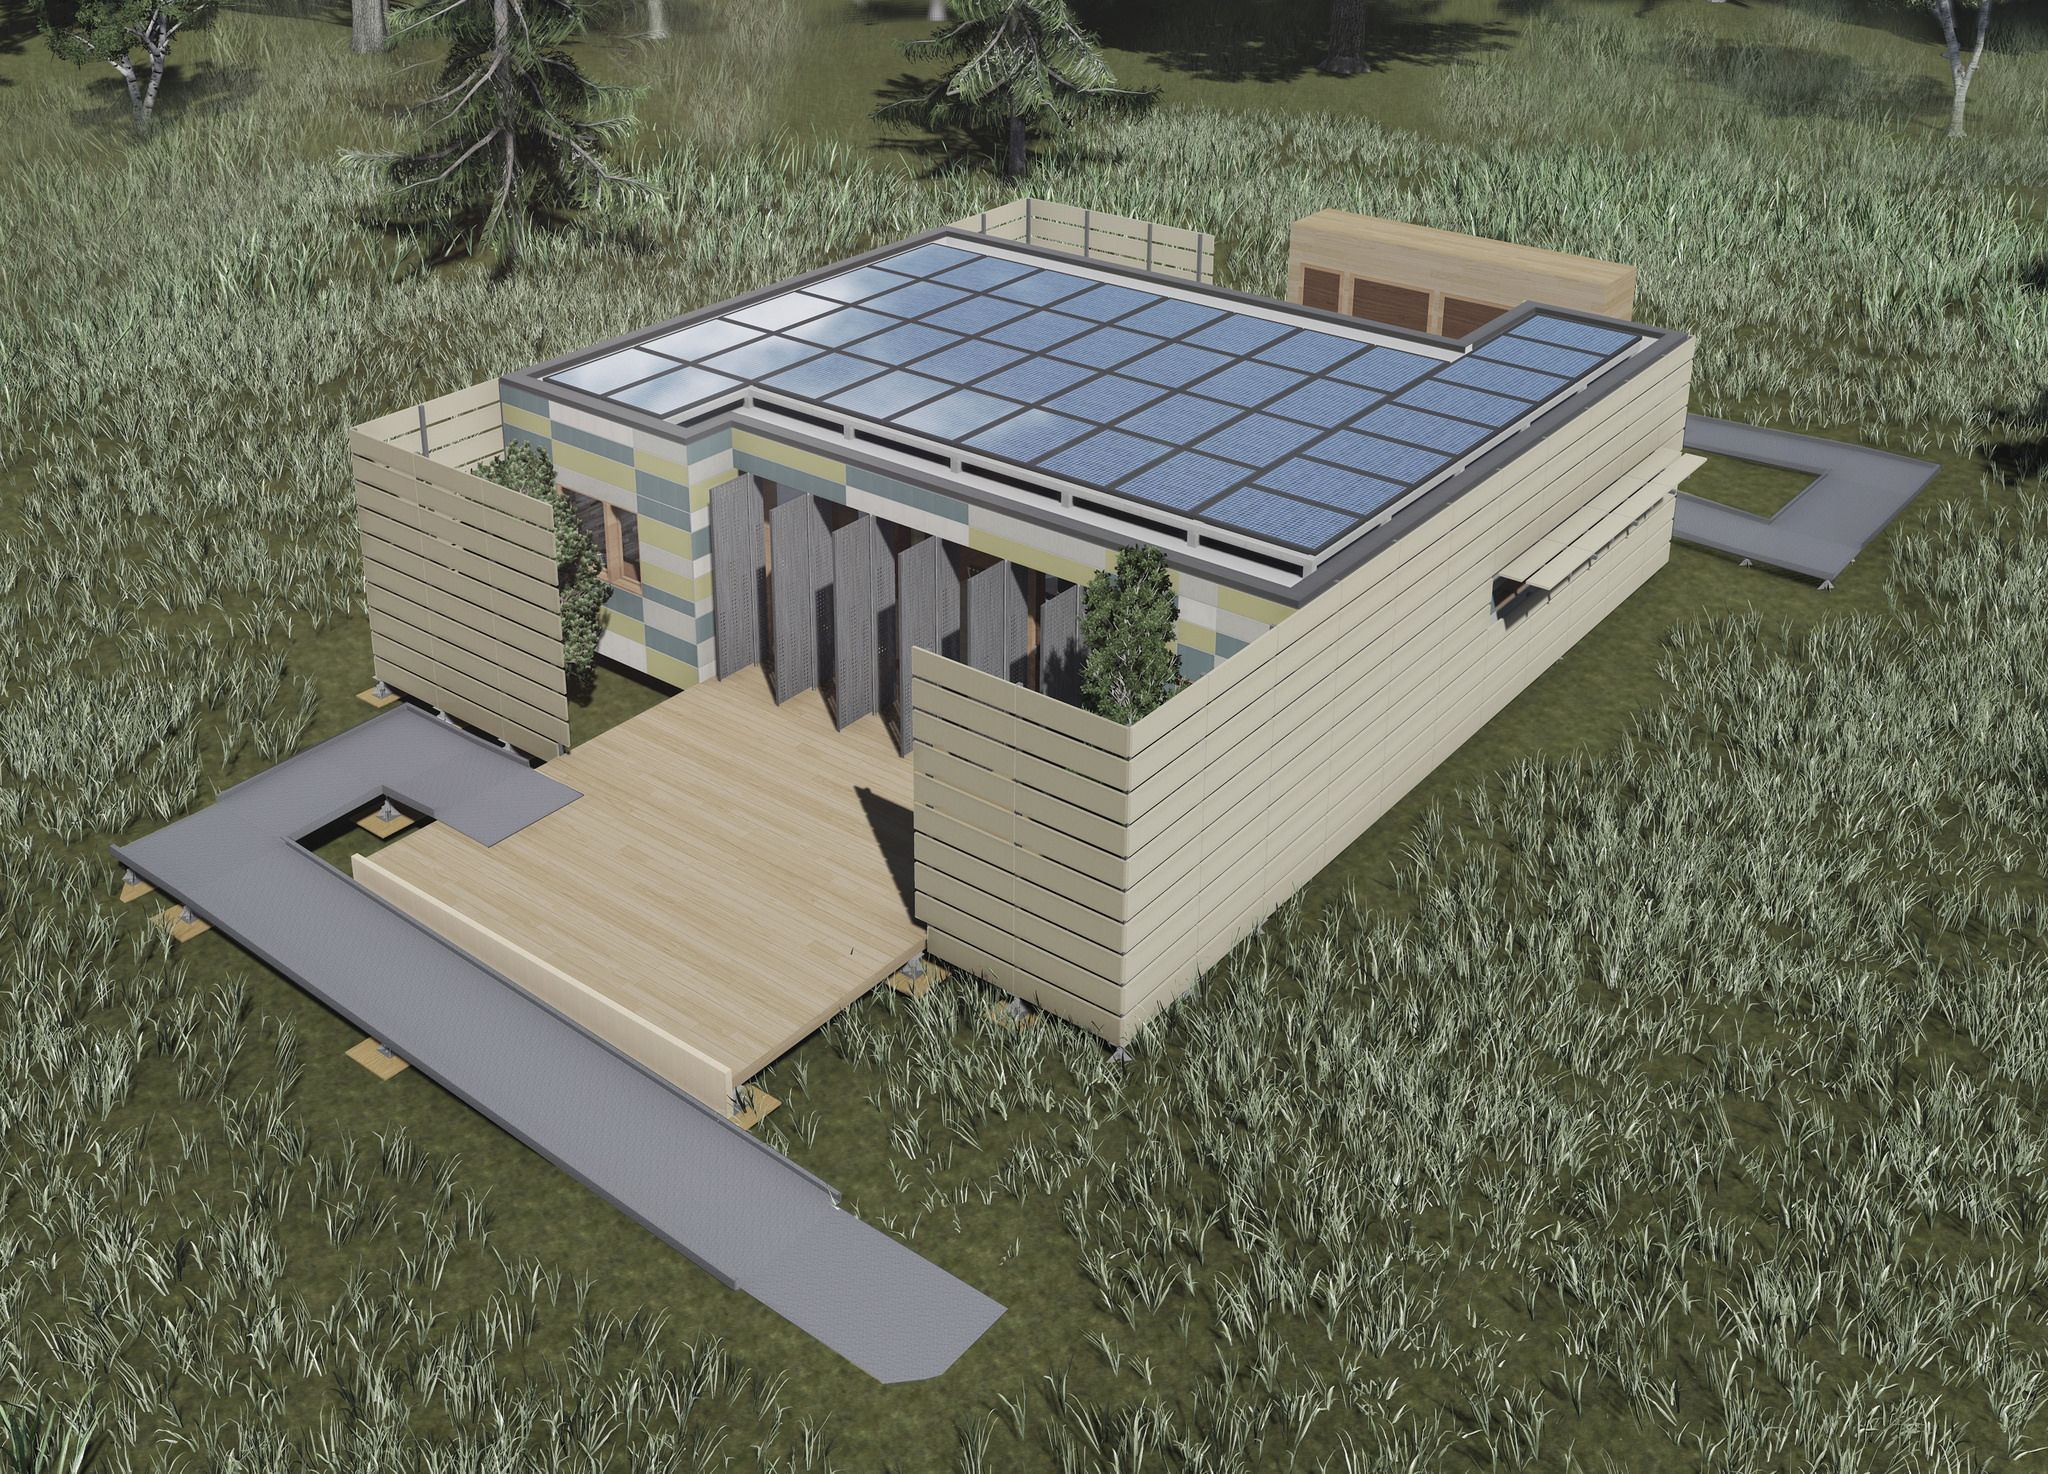 A Computer Generated Rendering Of The Crowder College And Drury University Solar Decathlon 2015 House Green Energy Solar Solar Energy Diy Solar Power Energy